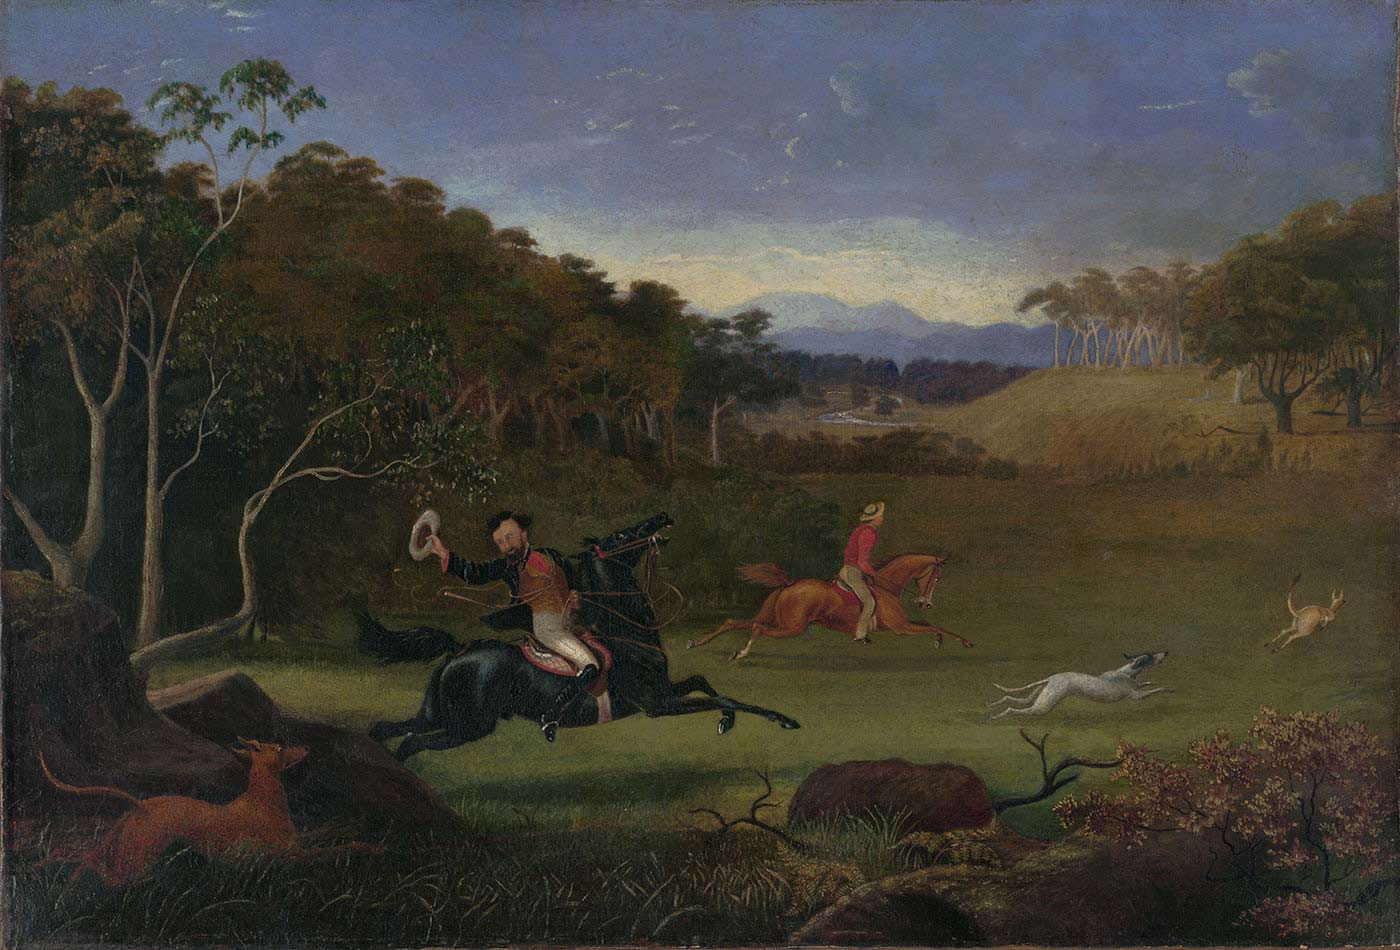 Art work showing a country landscape framed by trees either side and hills in the distance. In a grassed clearing at the front a man doffing his hat rides a black horse. Another man on a brown-coloured horse rides alongside him. Two dogs are pictured chasing a bounding kangaroo. - click to view larger image